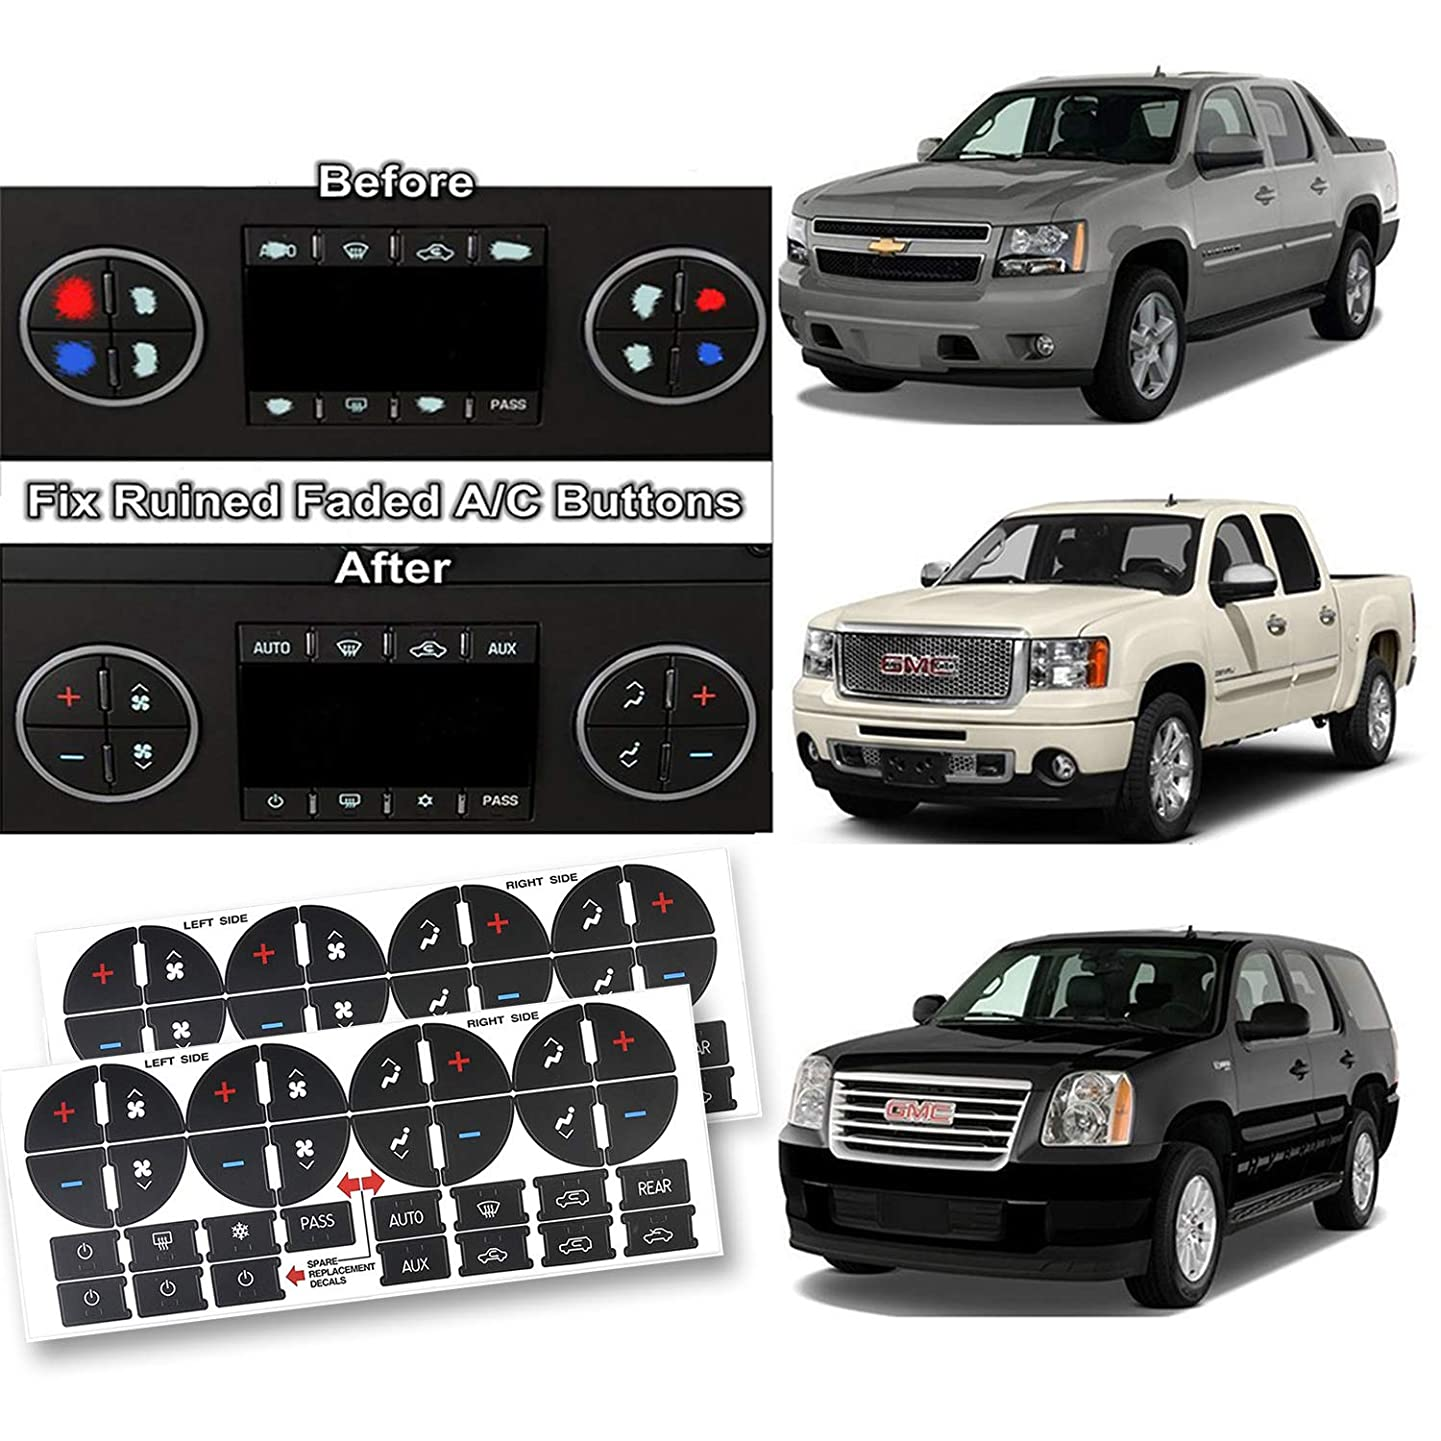 Fullsexy 2 Pack AC Dash Button Sticker Repair Kit for 2007-2013 GM GMC Chevy Chevrolet 2009-2012 Buick Saturn Decals Sticker PVC Fix Ruined Faded A/C Controls